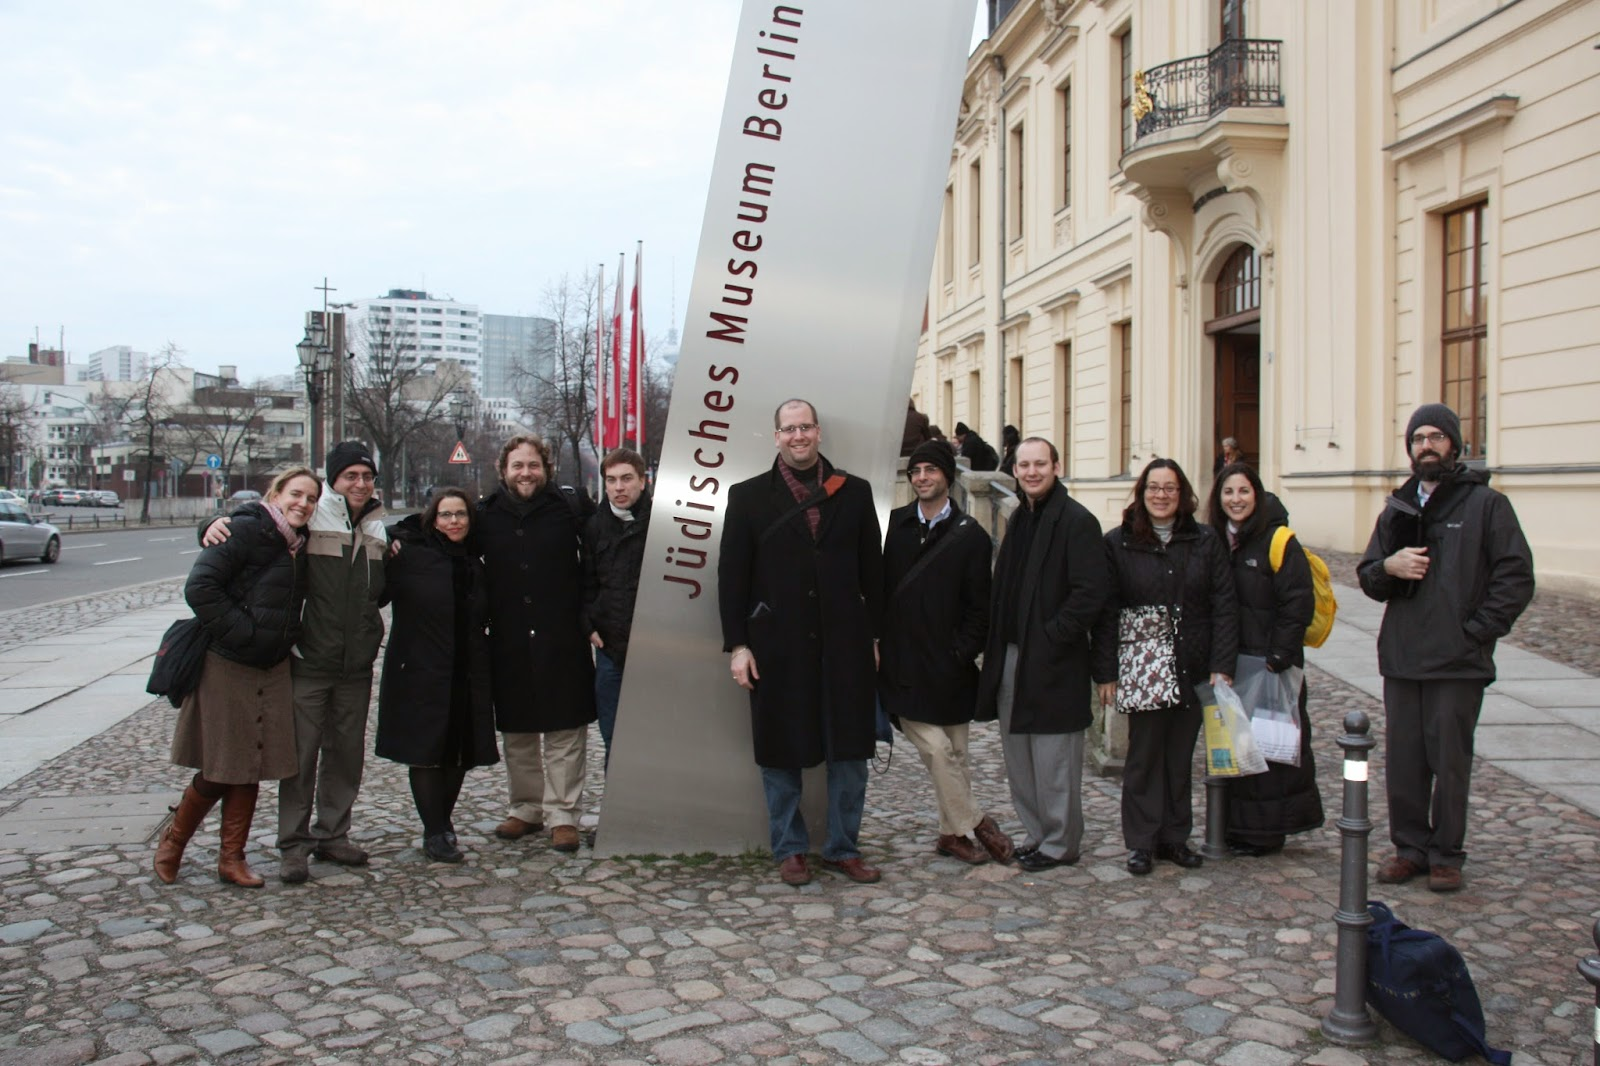 Masorti / Conservative rabbis in front of the Jewish Museum in Berlin (2011)